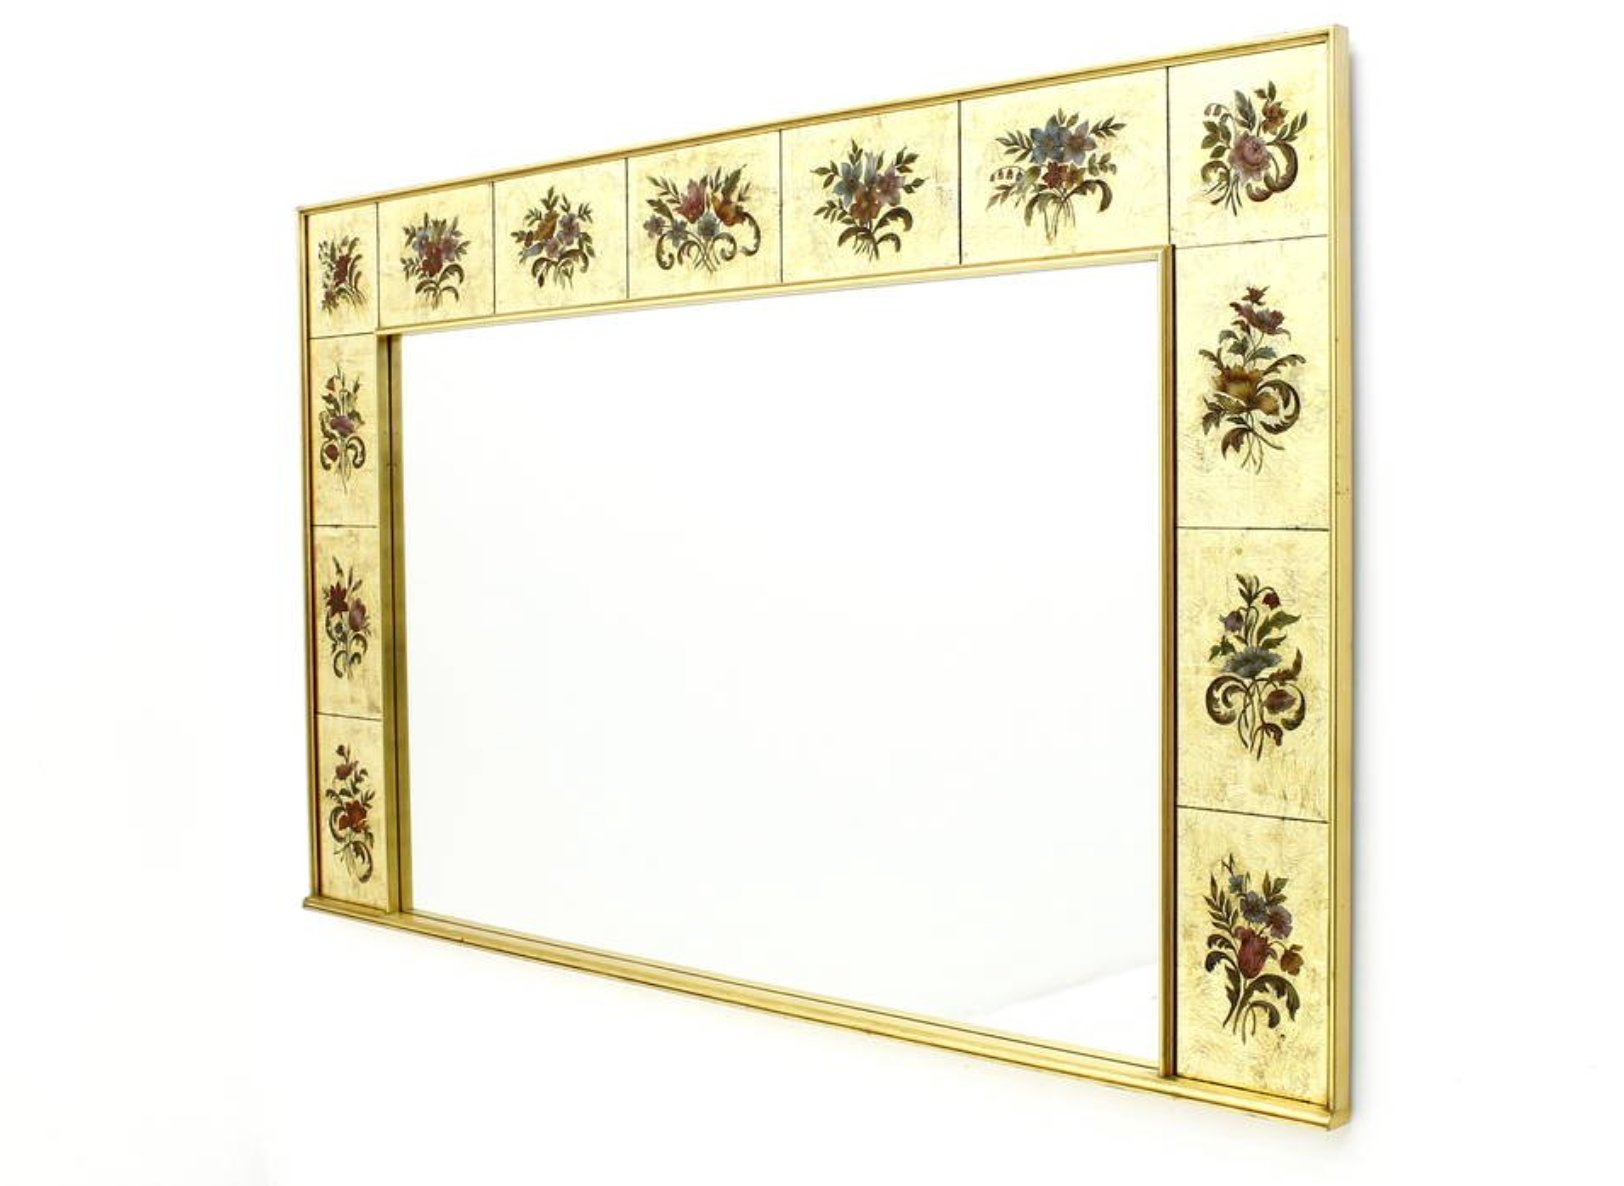 Large Decorative Wall Mirror 1980s For Sale At Pamono: large wooden mirrors for sale